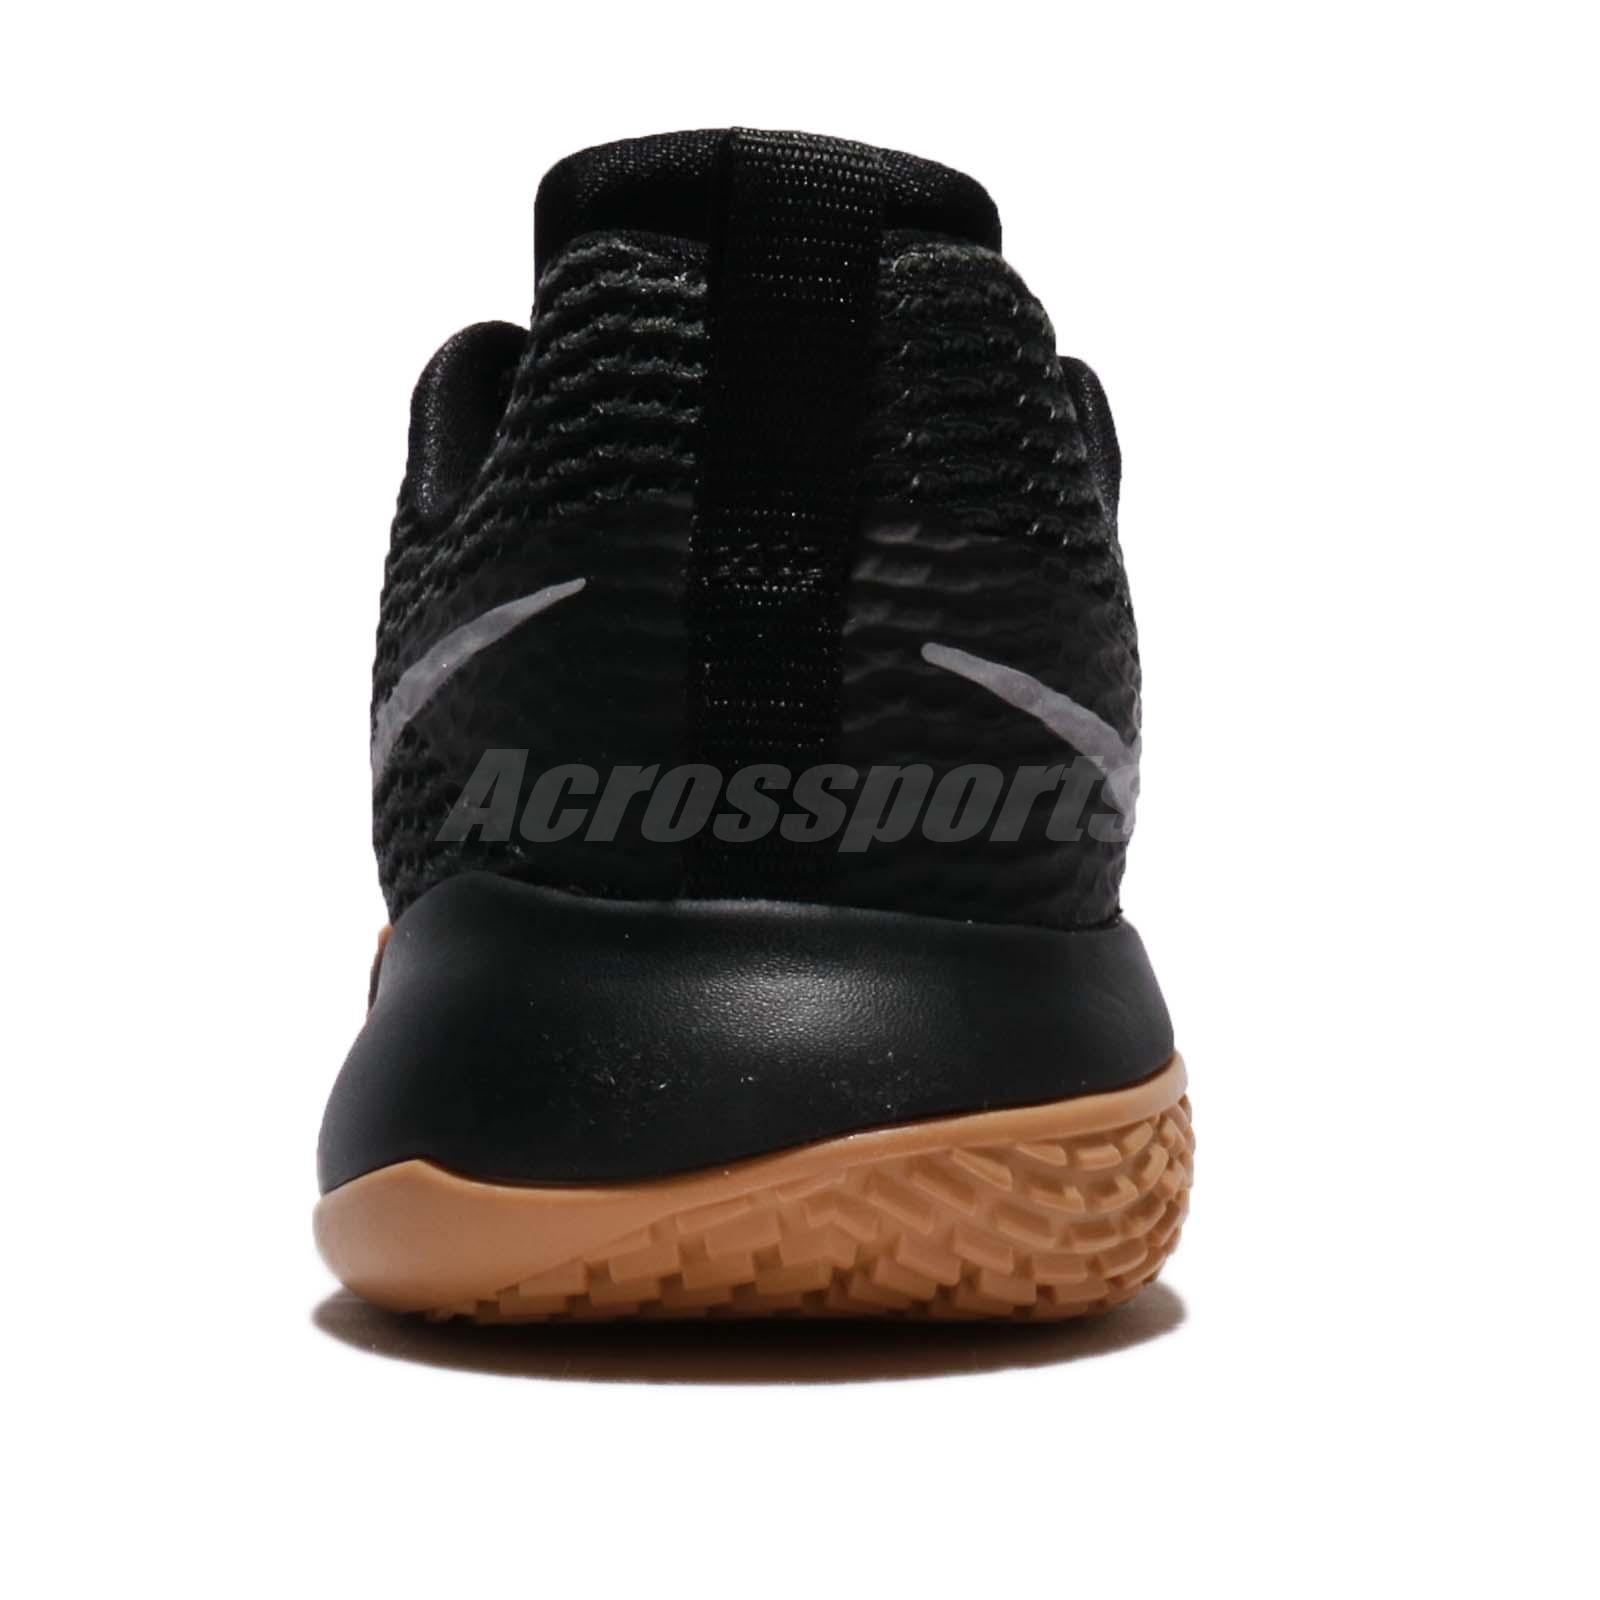 Wmns Nike Zoom Live Ii Ep Black Reflect Silver Gum Women Basketball Ah7579-001 Various Styles Women's Shoes Athletic Shoes